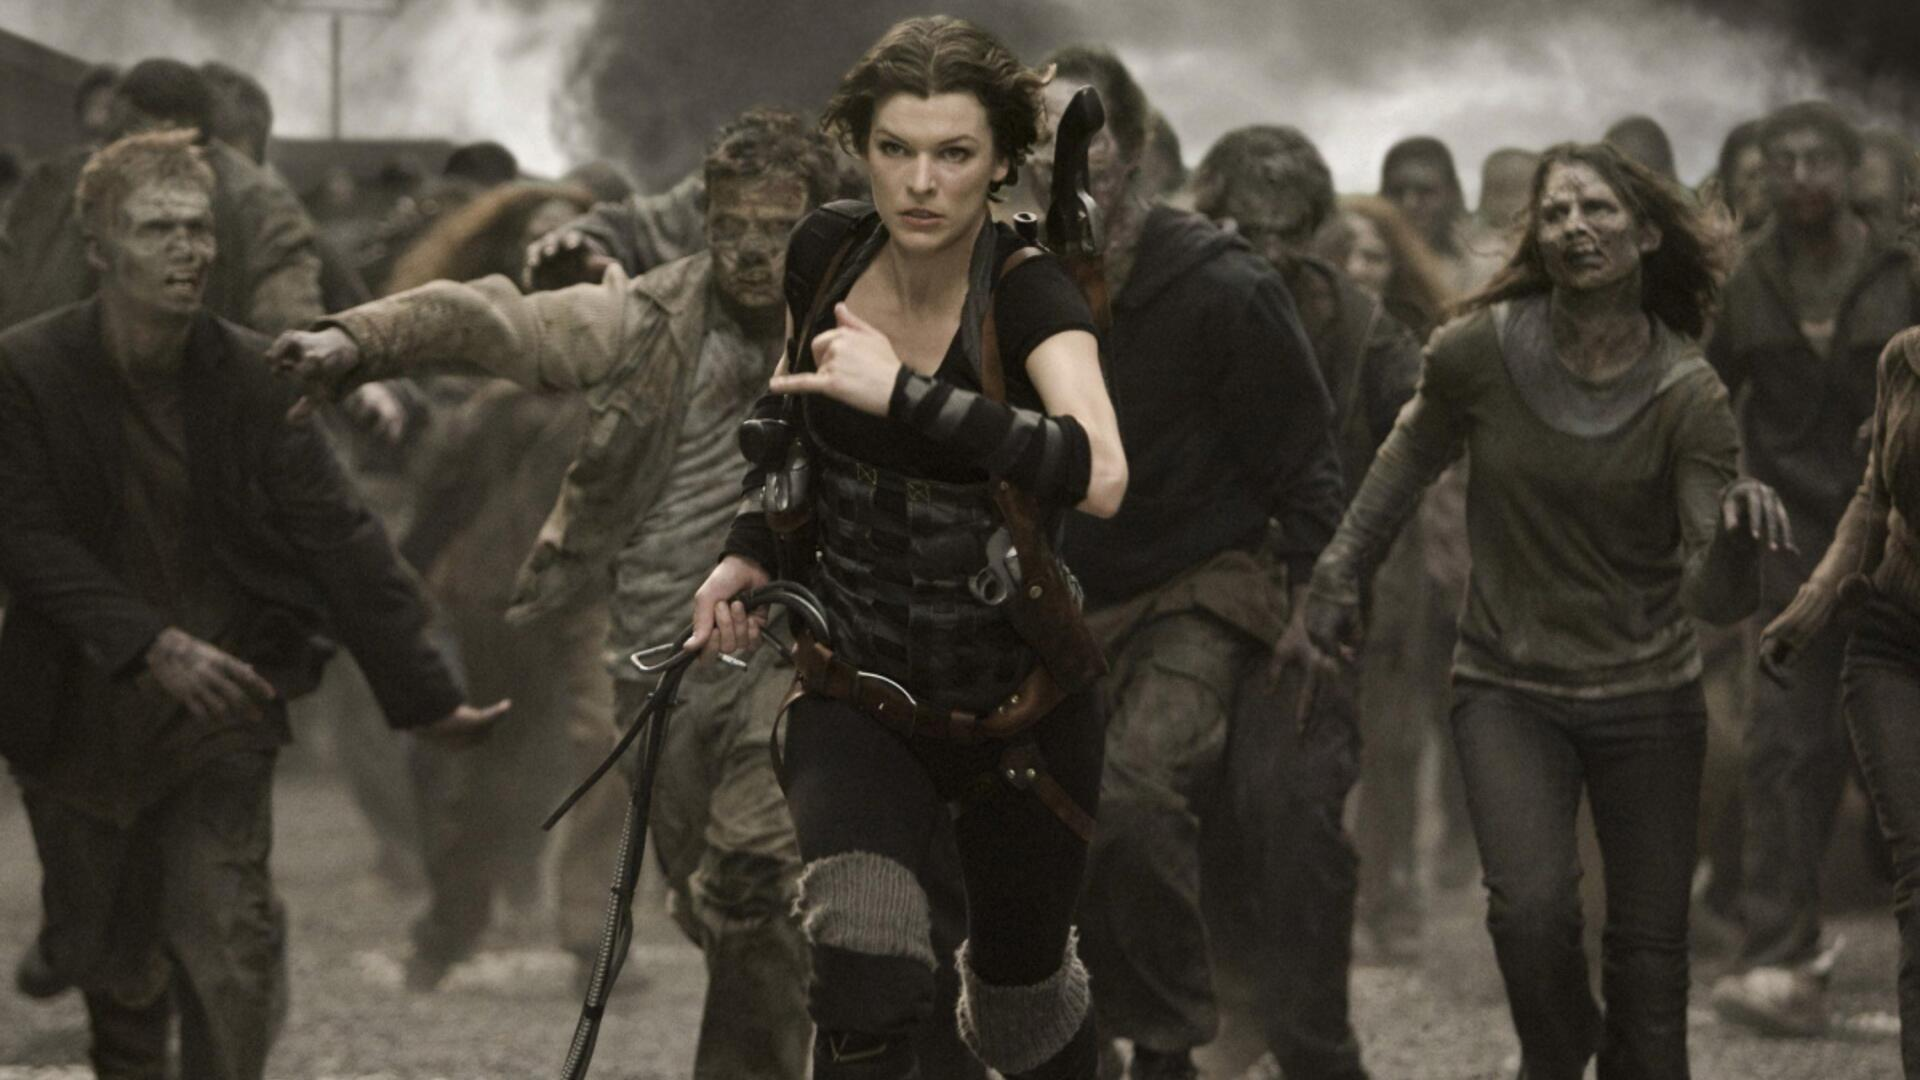 Resident Evil TV Series Reportedly Coming to Netflix Courtesy of the Company That Made the Very Bad Live-Action Films